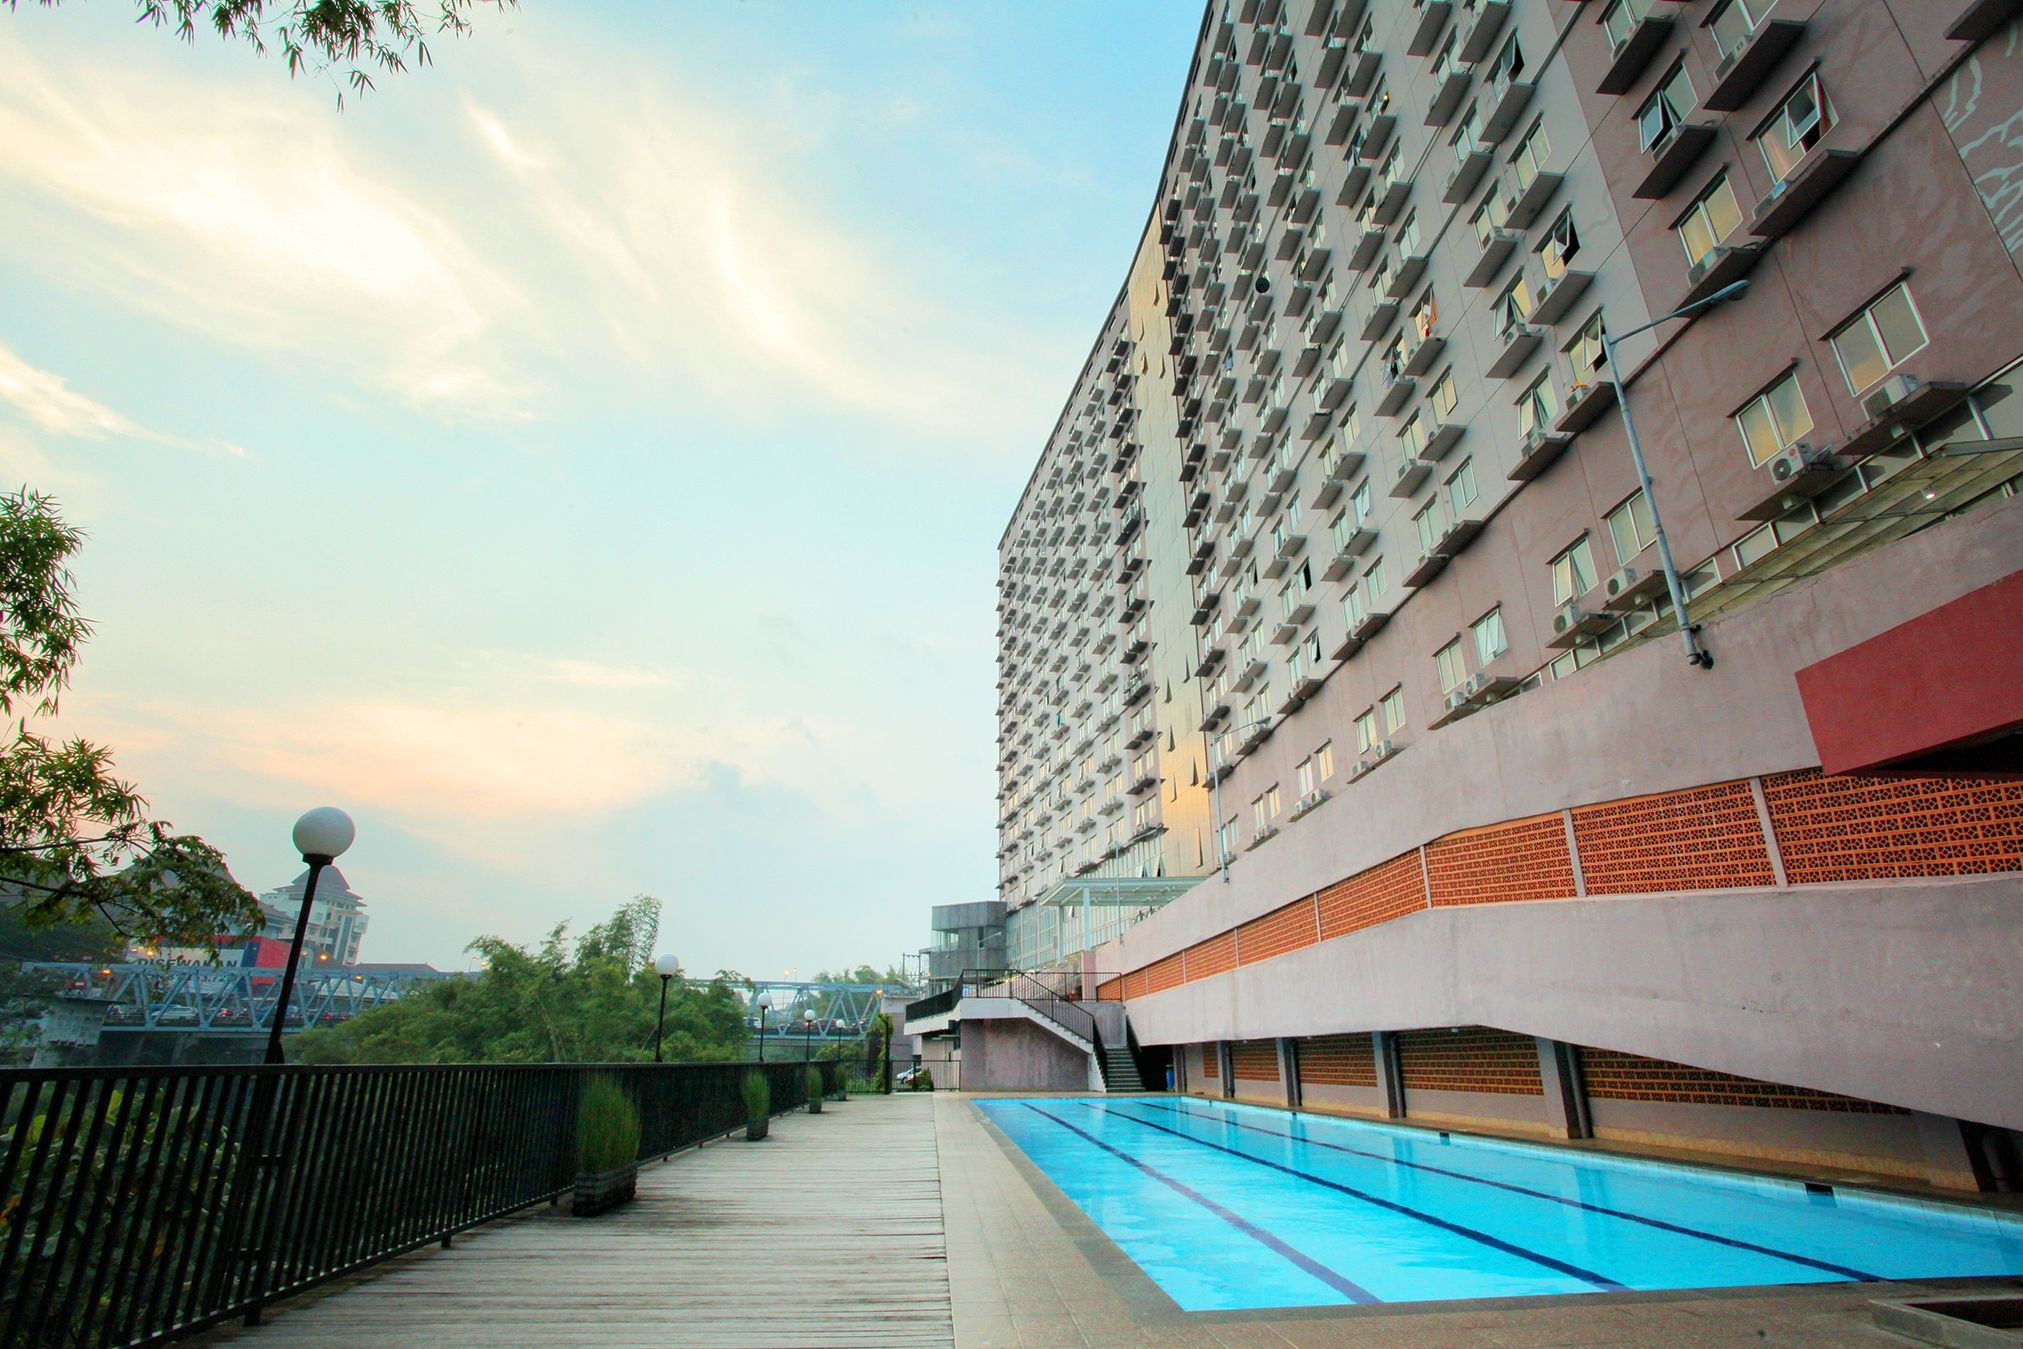 Everyday Smart Hotel Malang, Malang